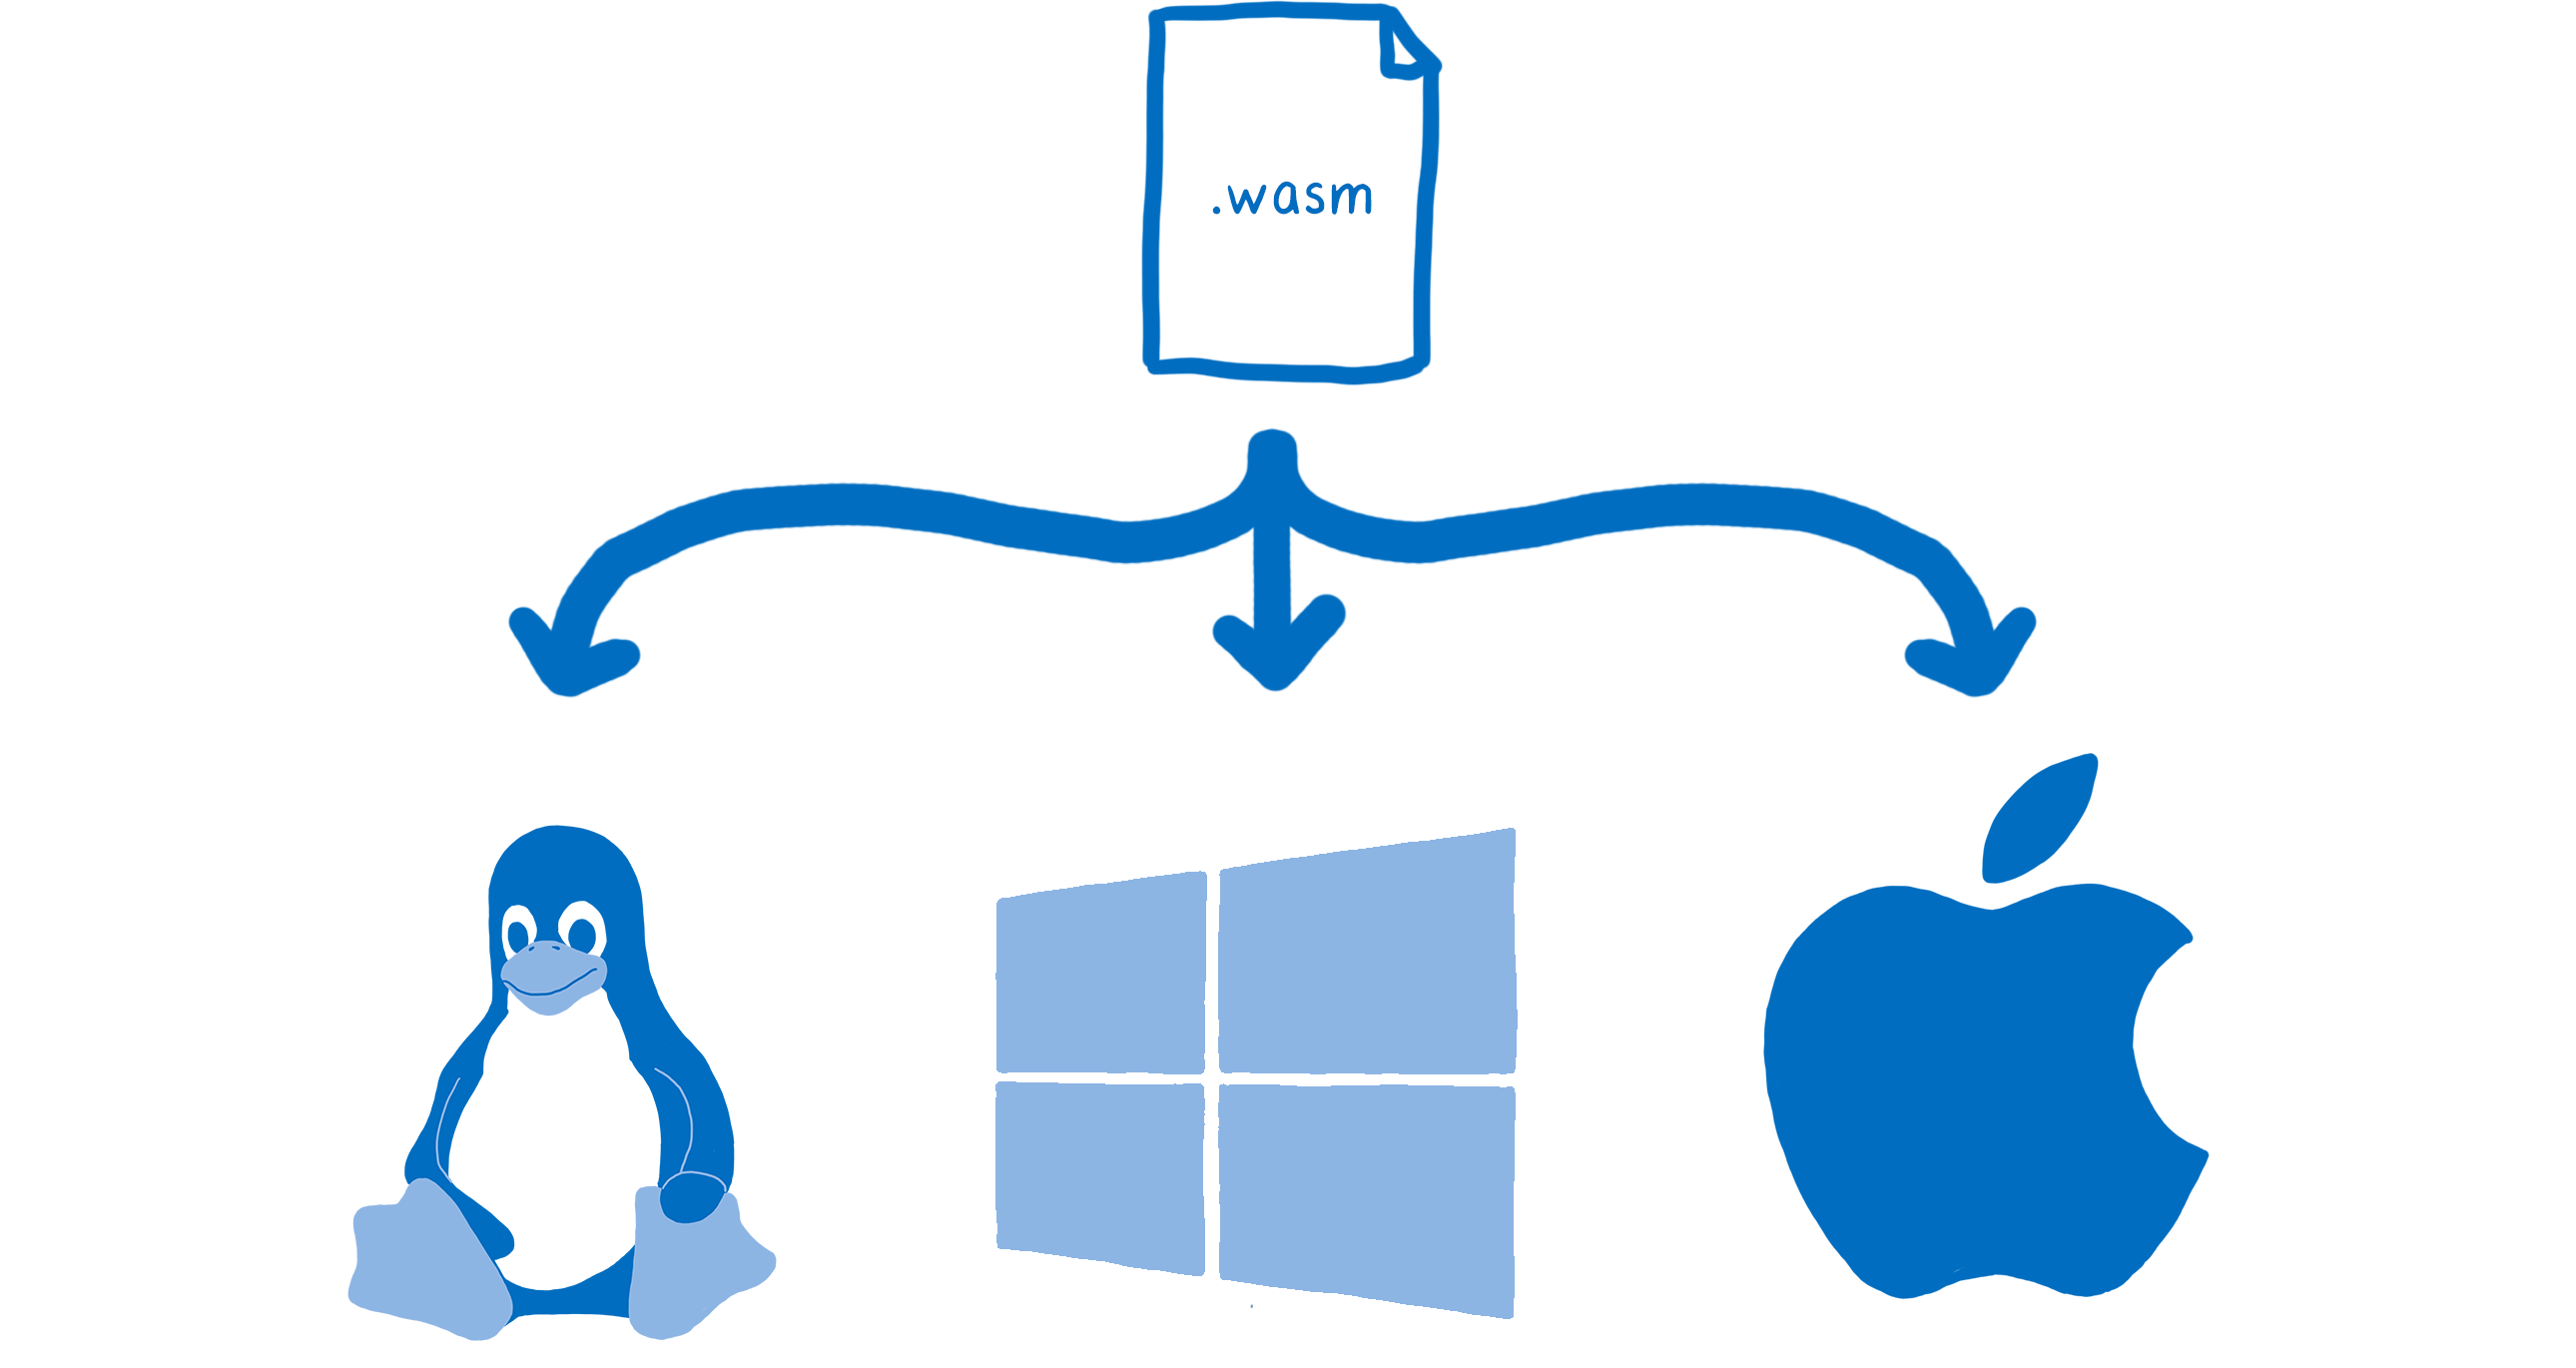 A .wasm file running across three different operating systems